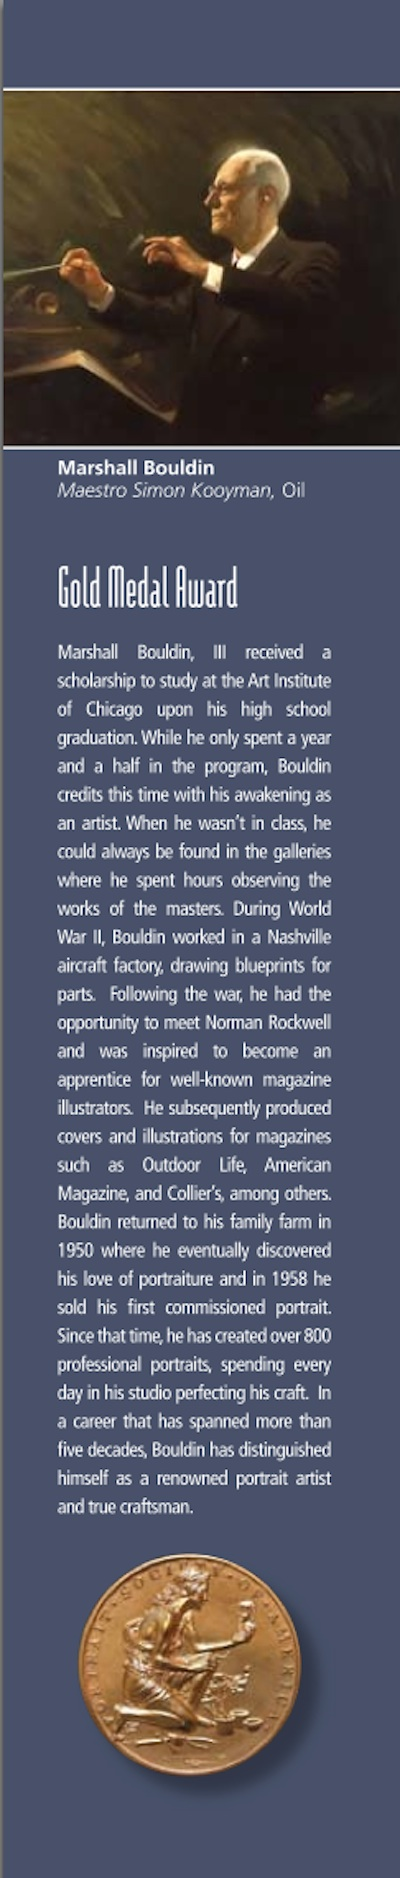 "Marshall Bouldin III from Clarksdale receives Gold Medal from Portrait Society of America at their conference ""The Art of the Portrait"" in Philadelphiia, PA."